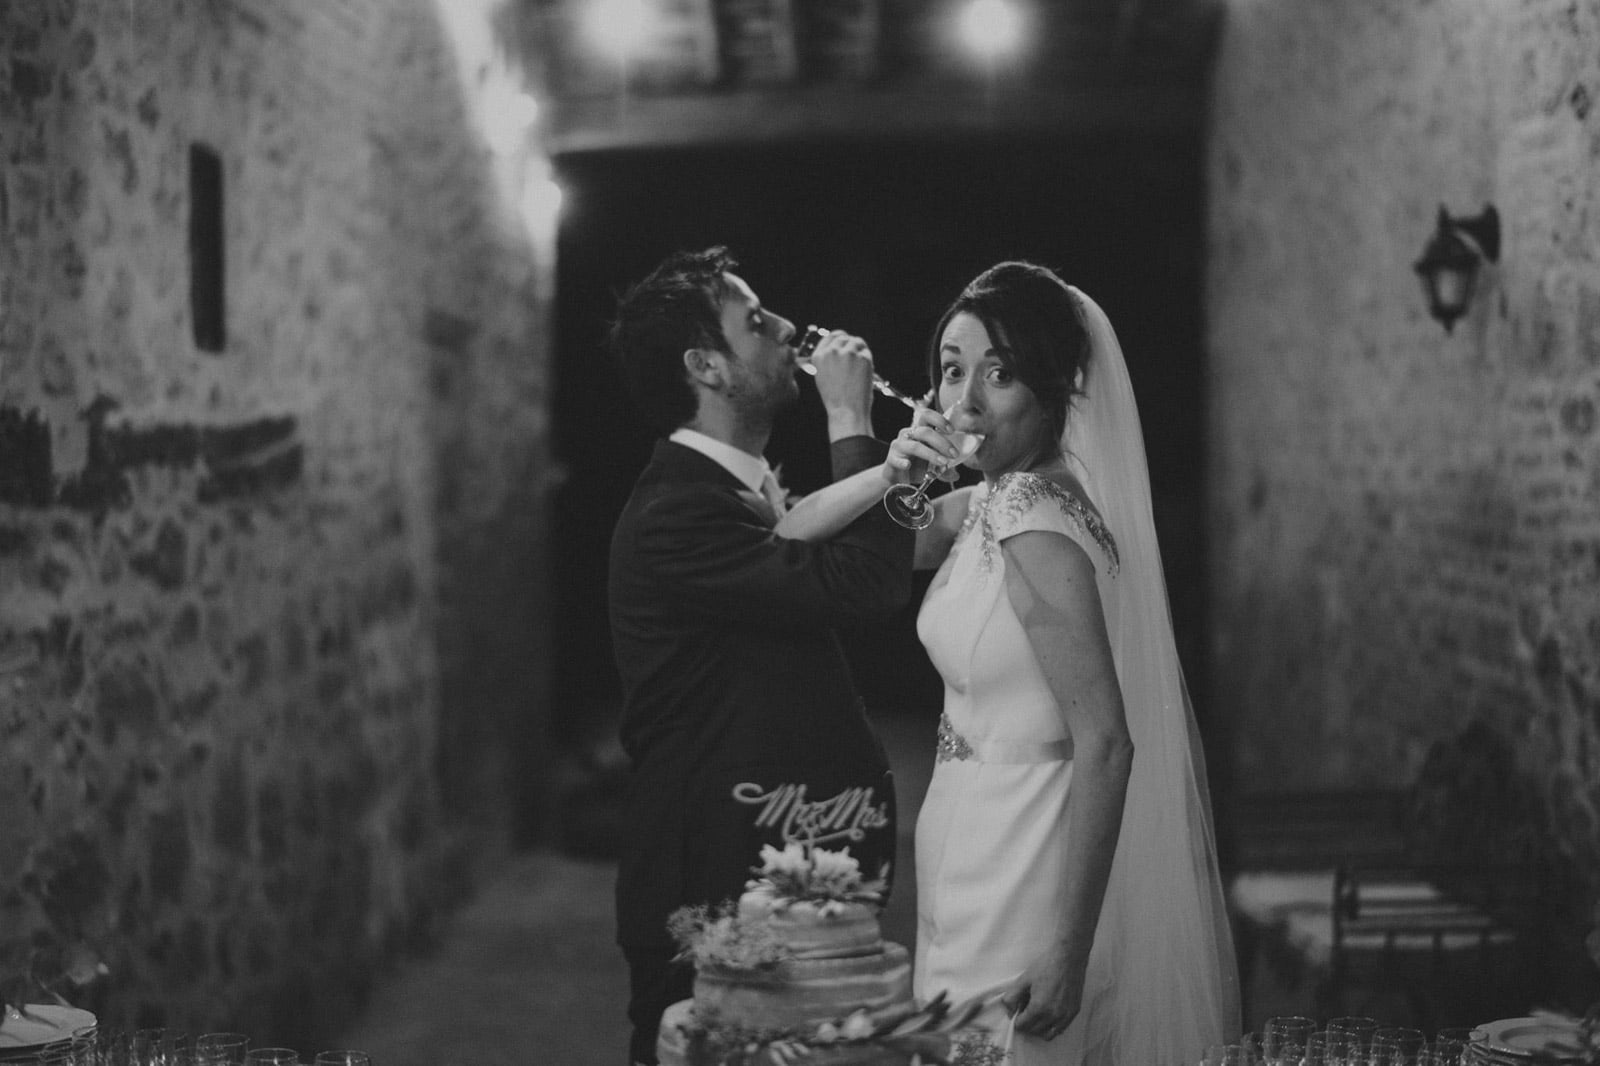 102-wedding-tuscany-san-galgano-federico-pannacci-photographer